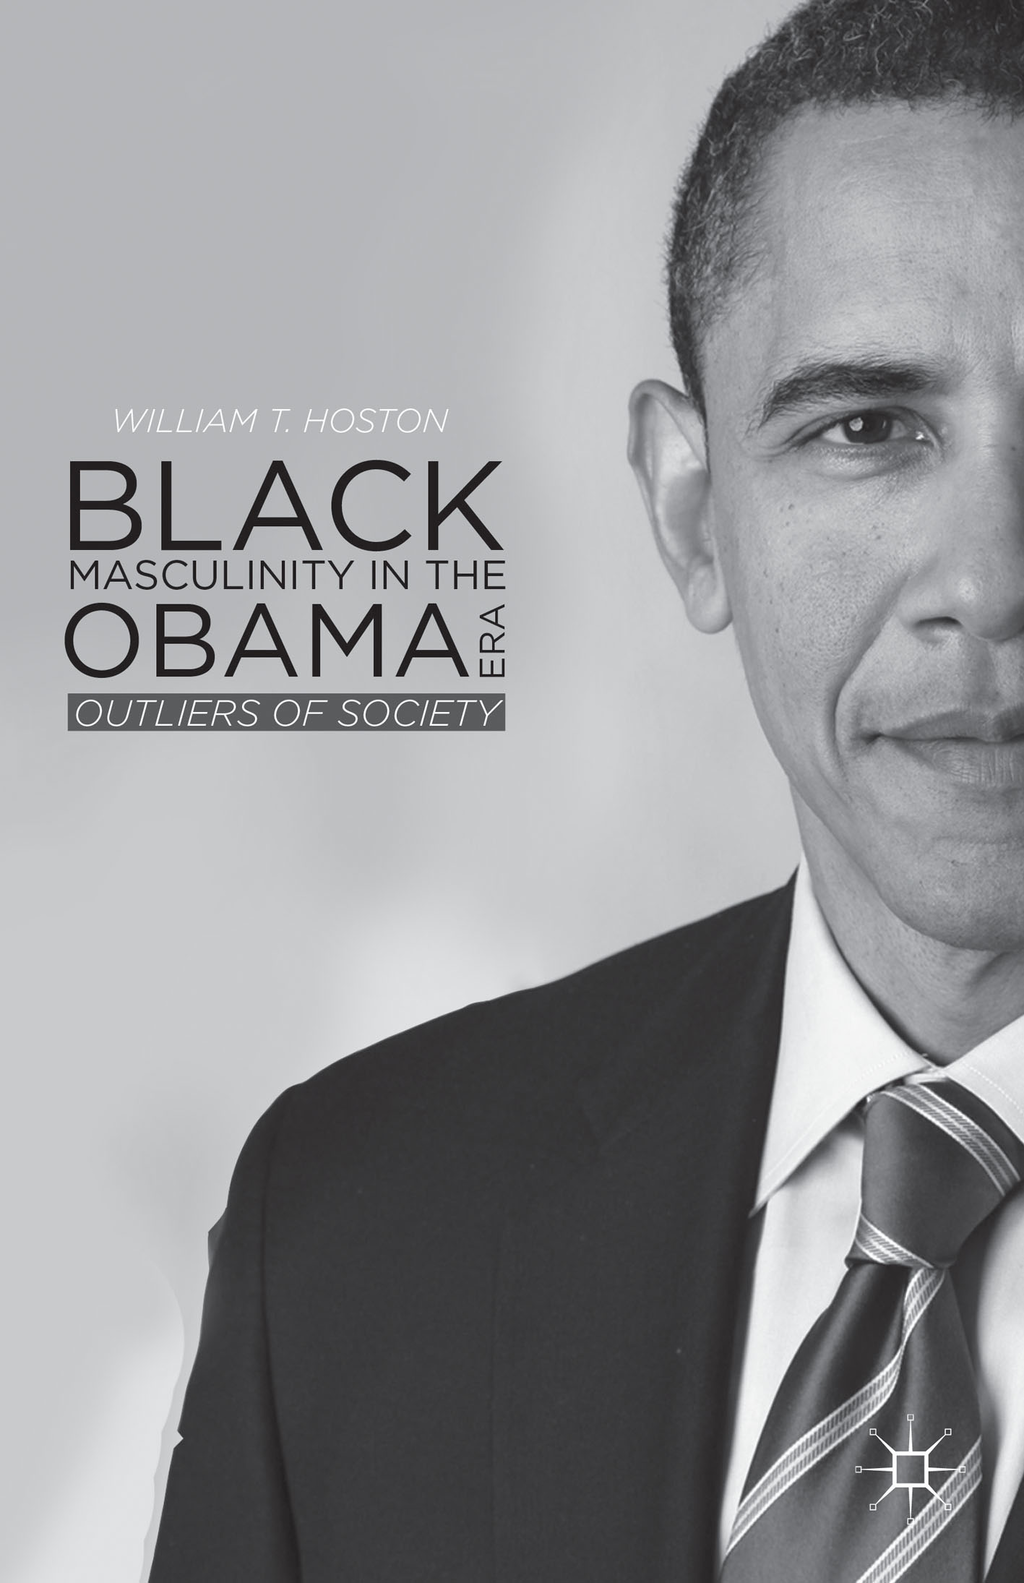 Black Masculinity in the Obama Era Outliers of Society